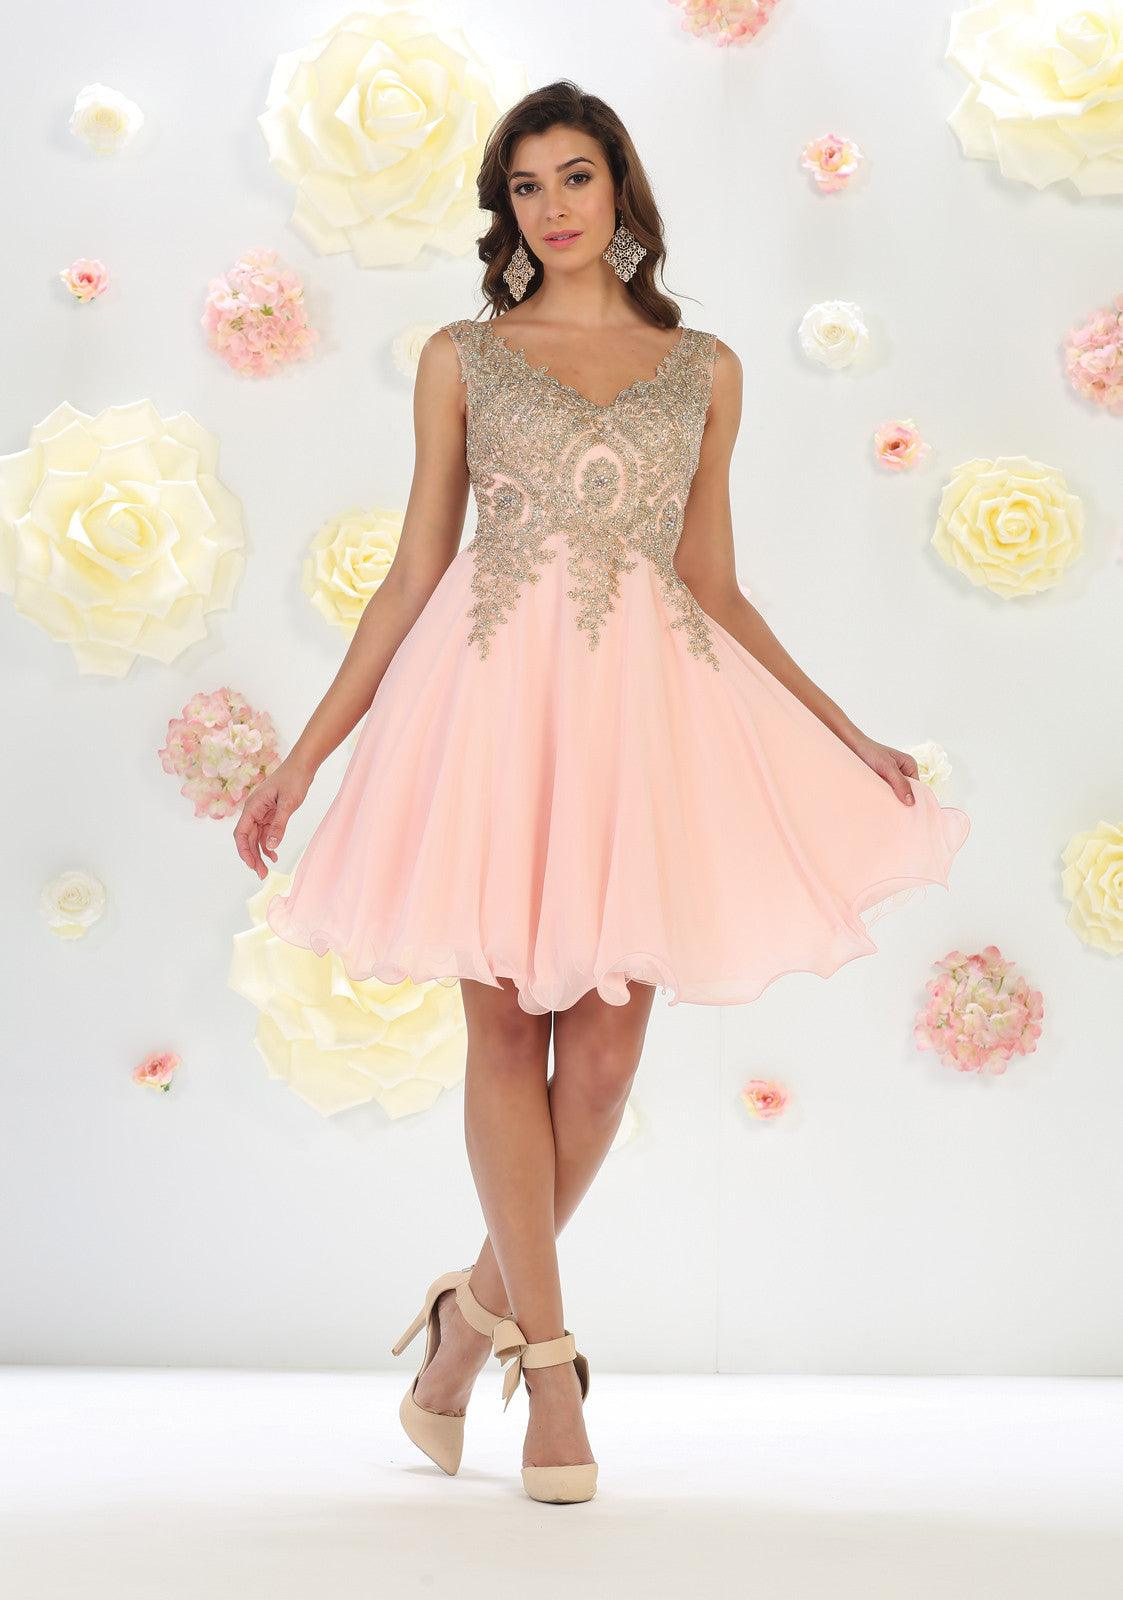 Prom Dresses under $200 - The Dress Outlet